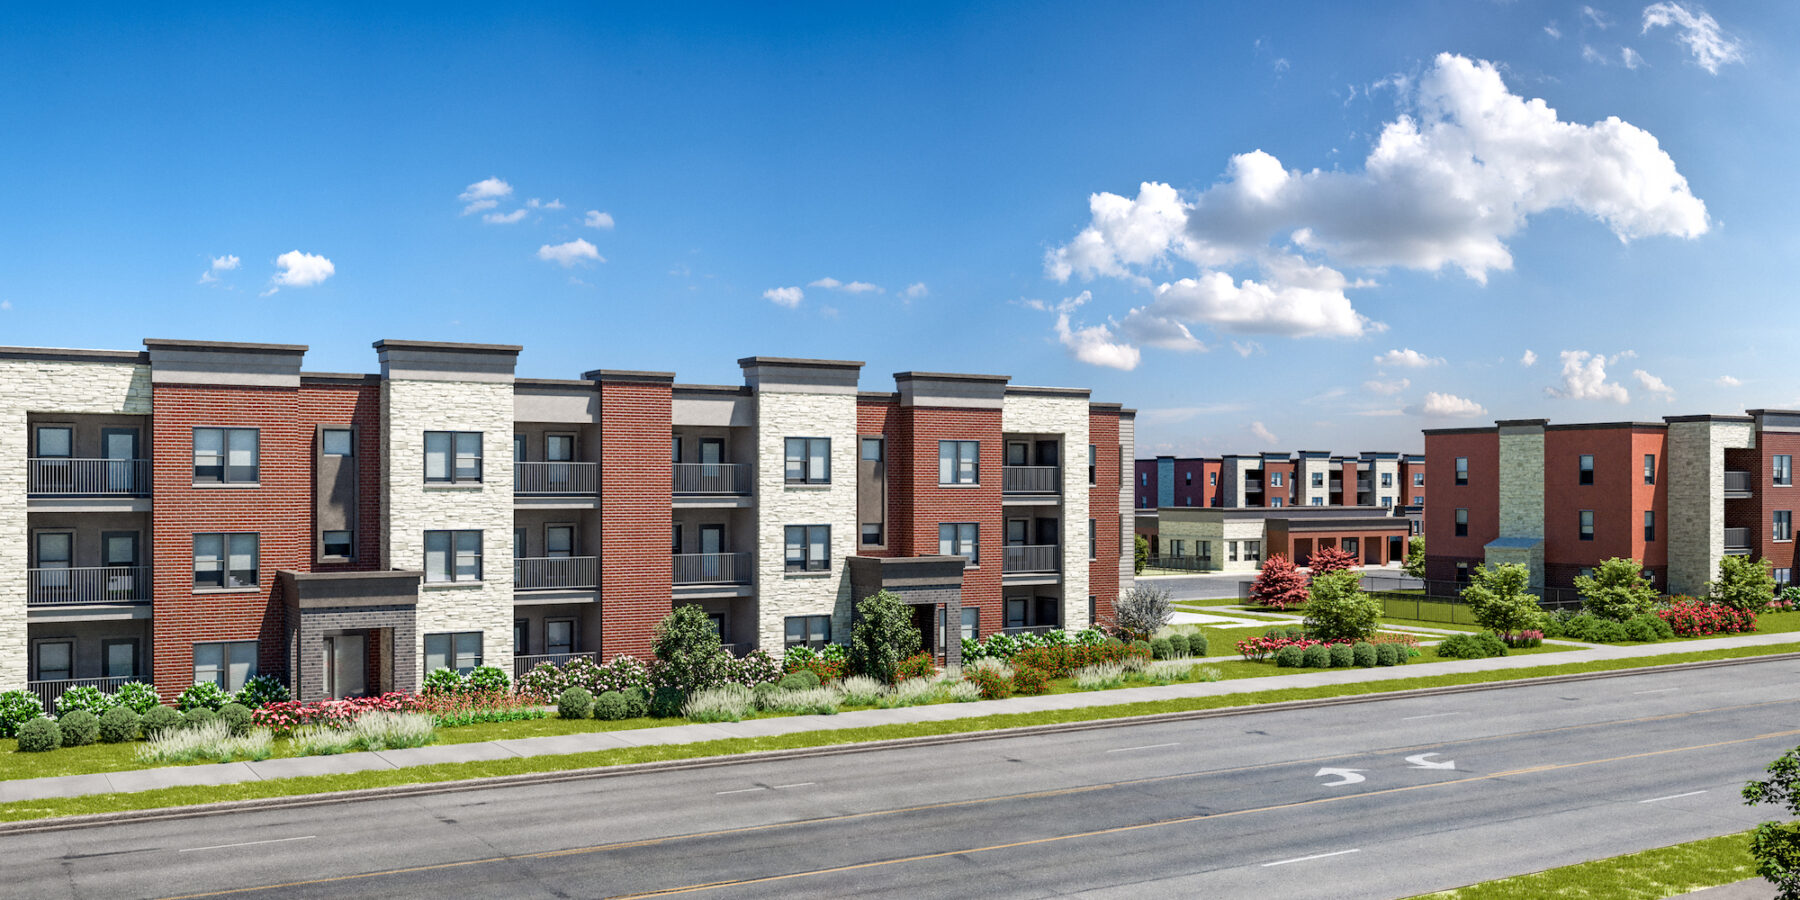 RD1 Union at Wiley - Front Exterior annex group affordable housing development